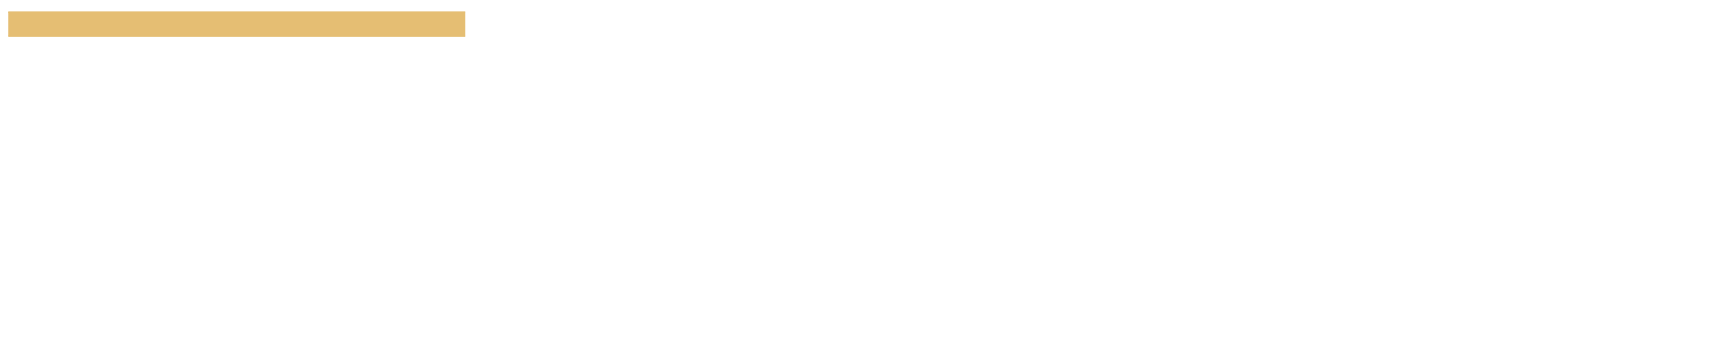 Association of Rooftop & Airspace Development